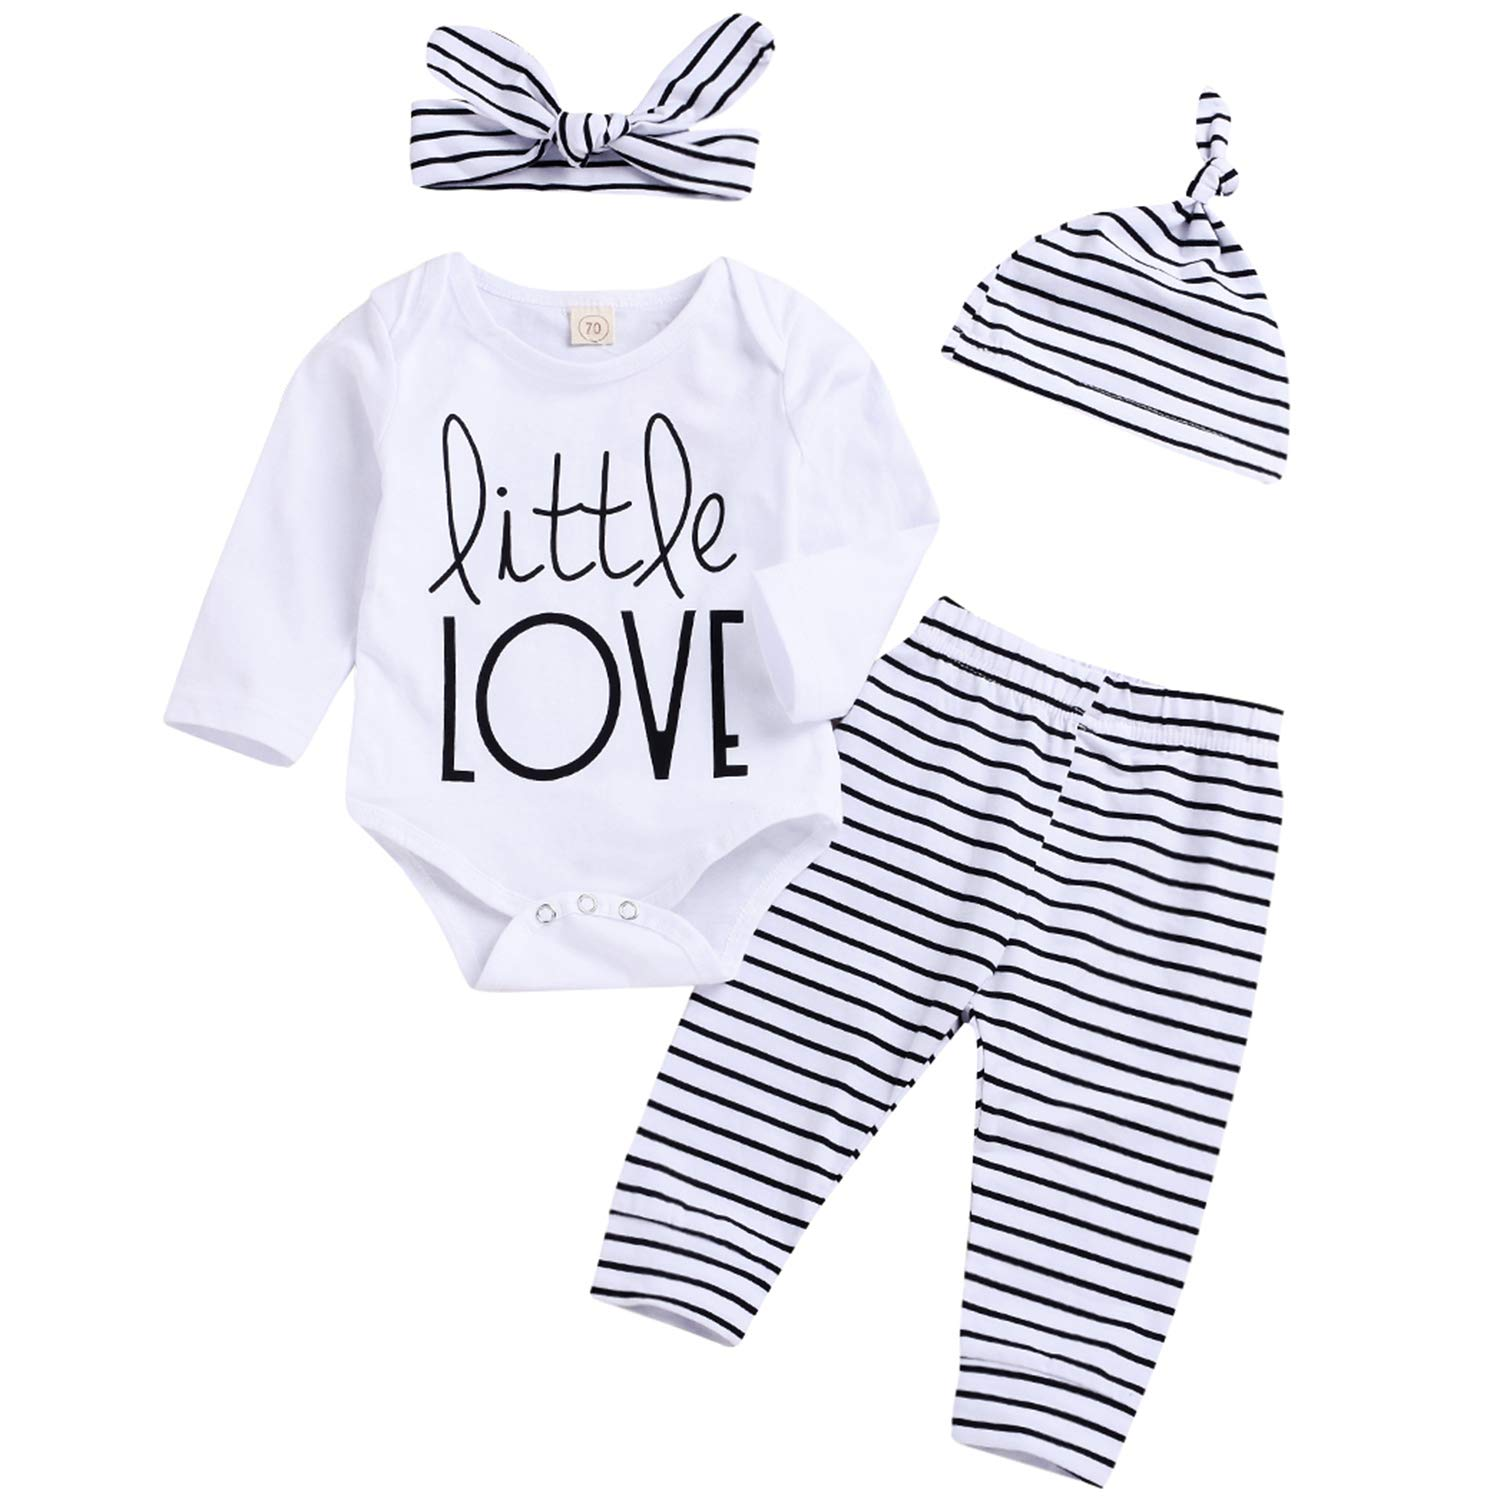 ad74e3686782 Amazon.com  YOUNGER TREE Newborn Baby Girl Boy Cotton Outfits Long Sleeve  Romper Striped Pants Hat Headband Spring Clothing Set  Clothing